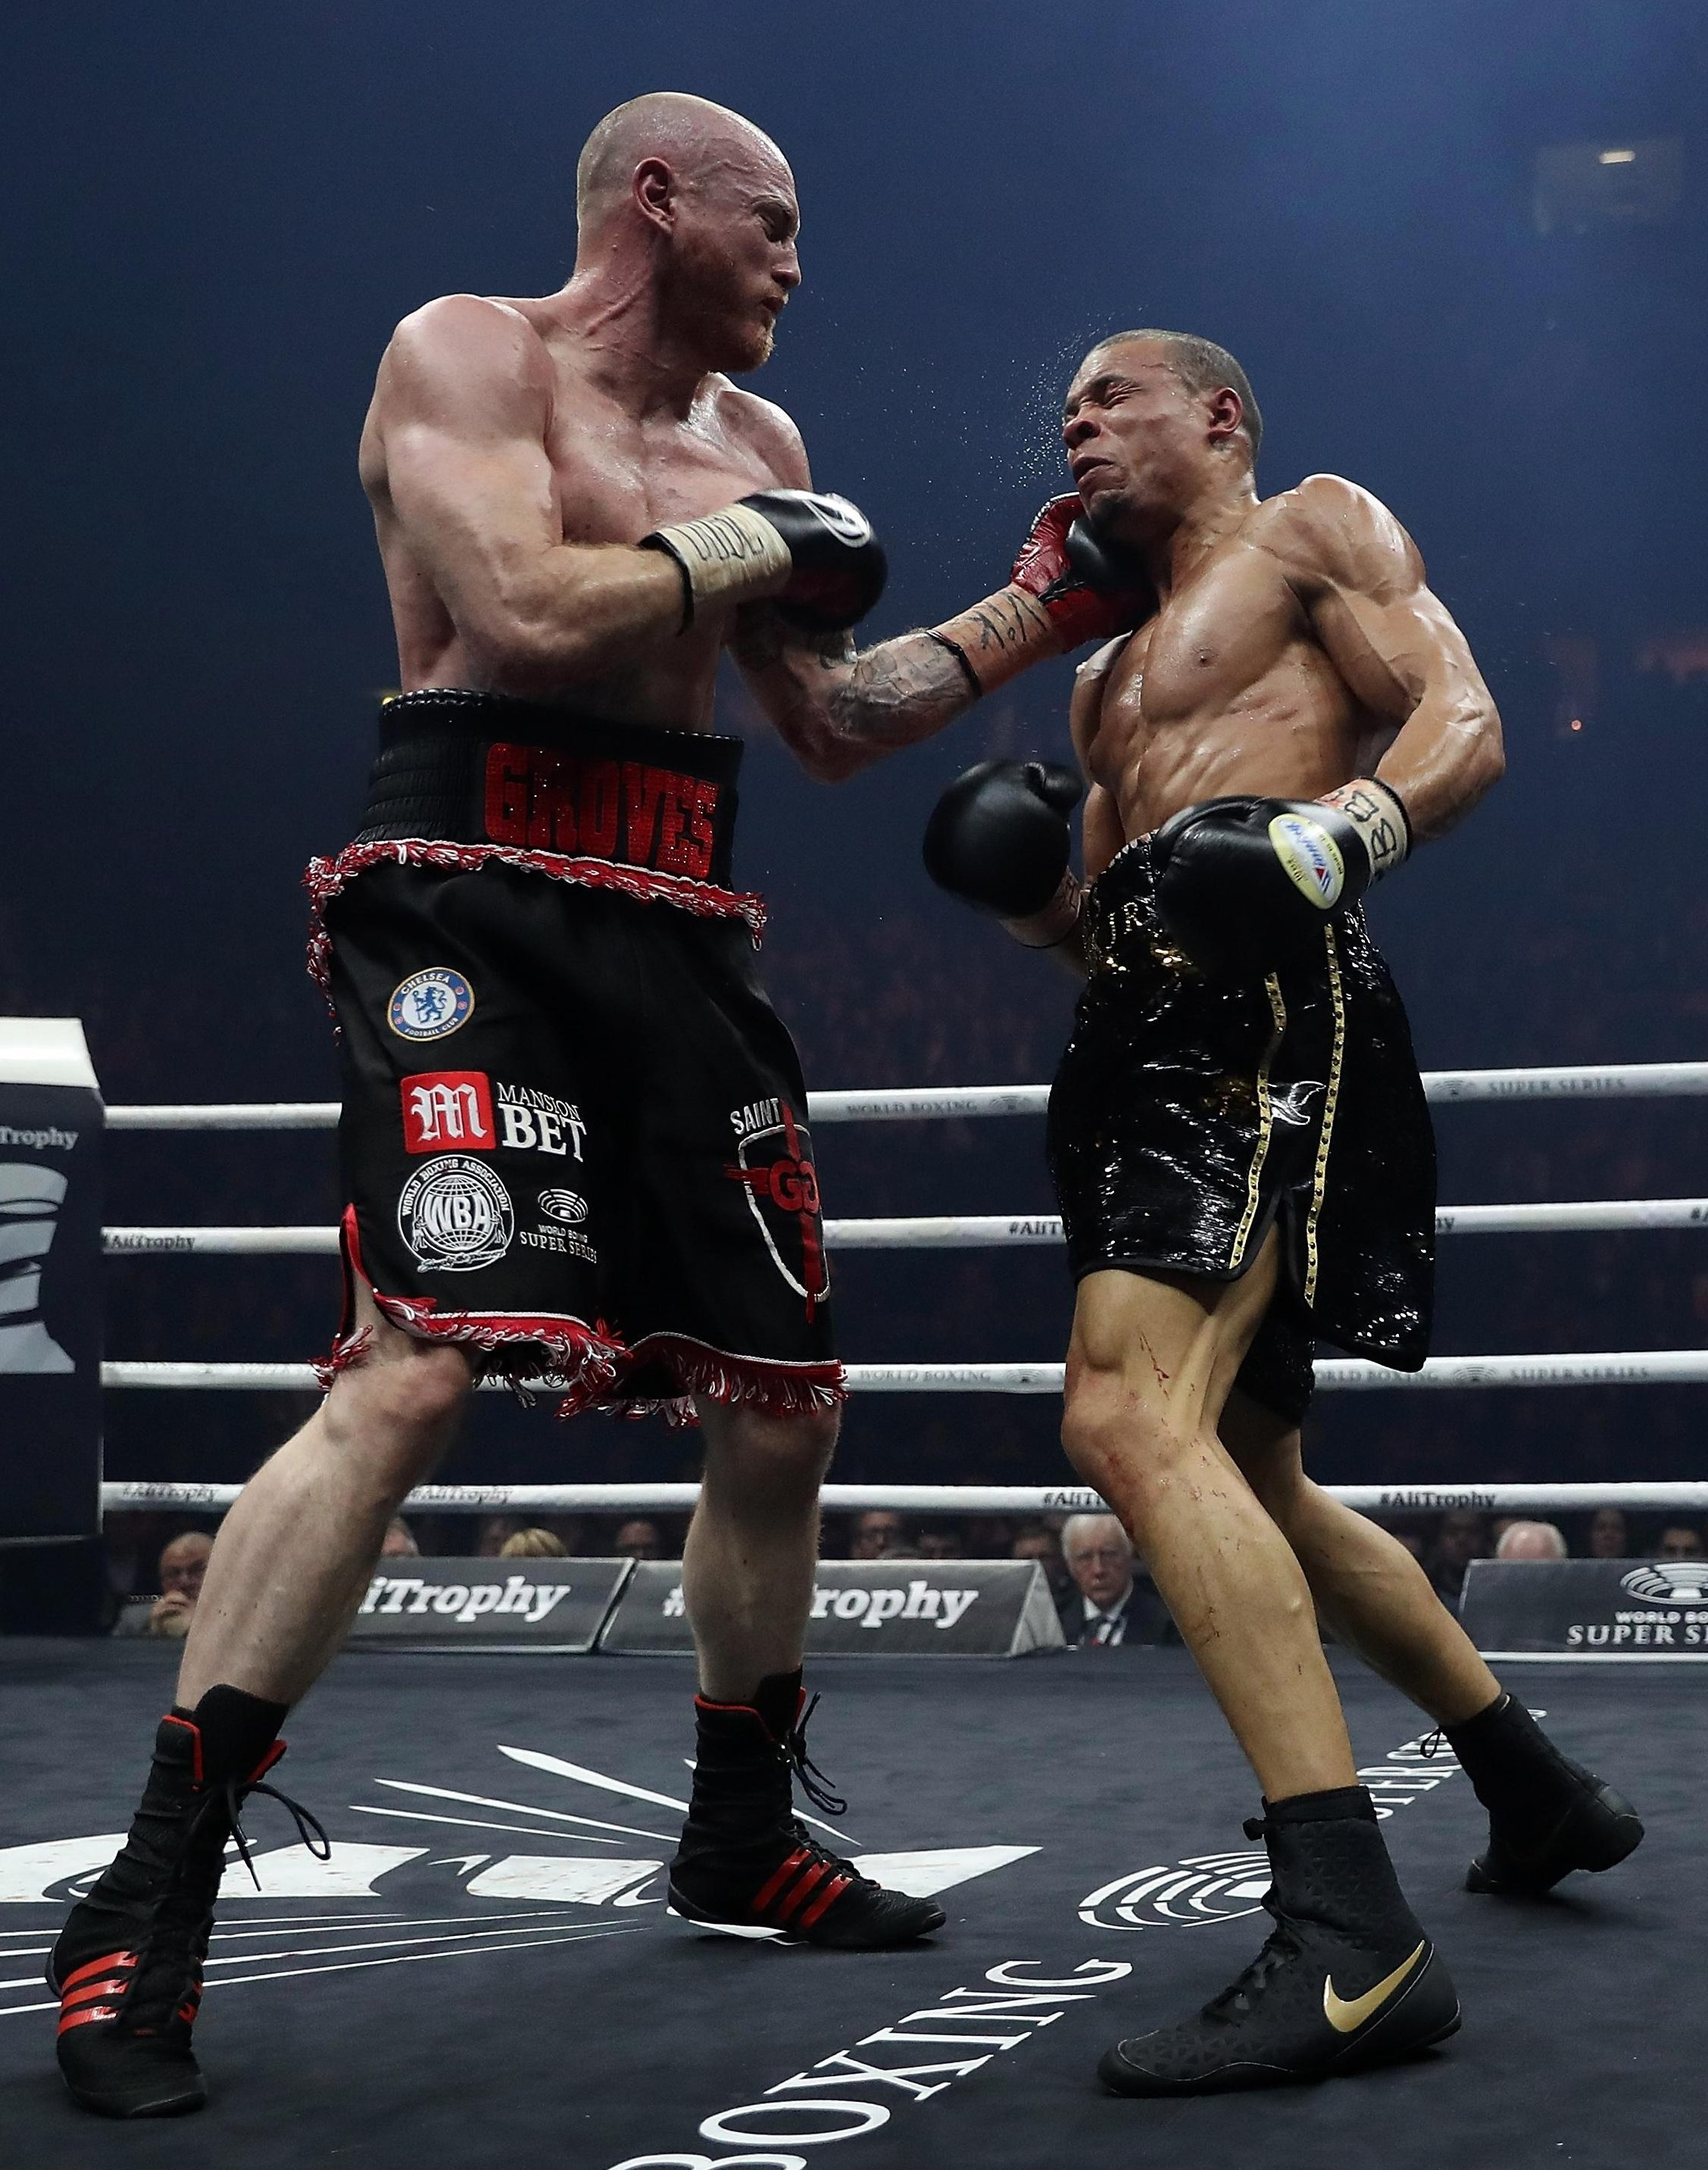 Groves dislocated his left shoulder in his last fight as he outpointed Chris Eubank Jr